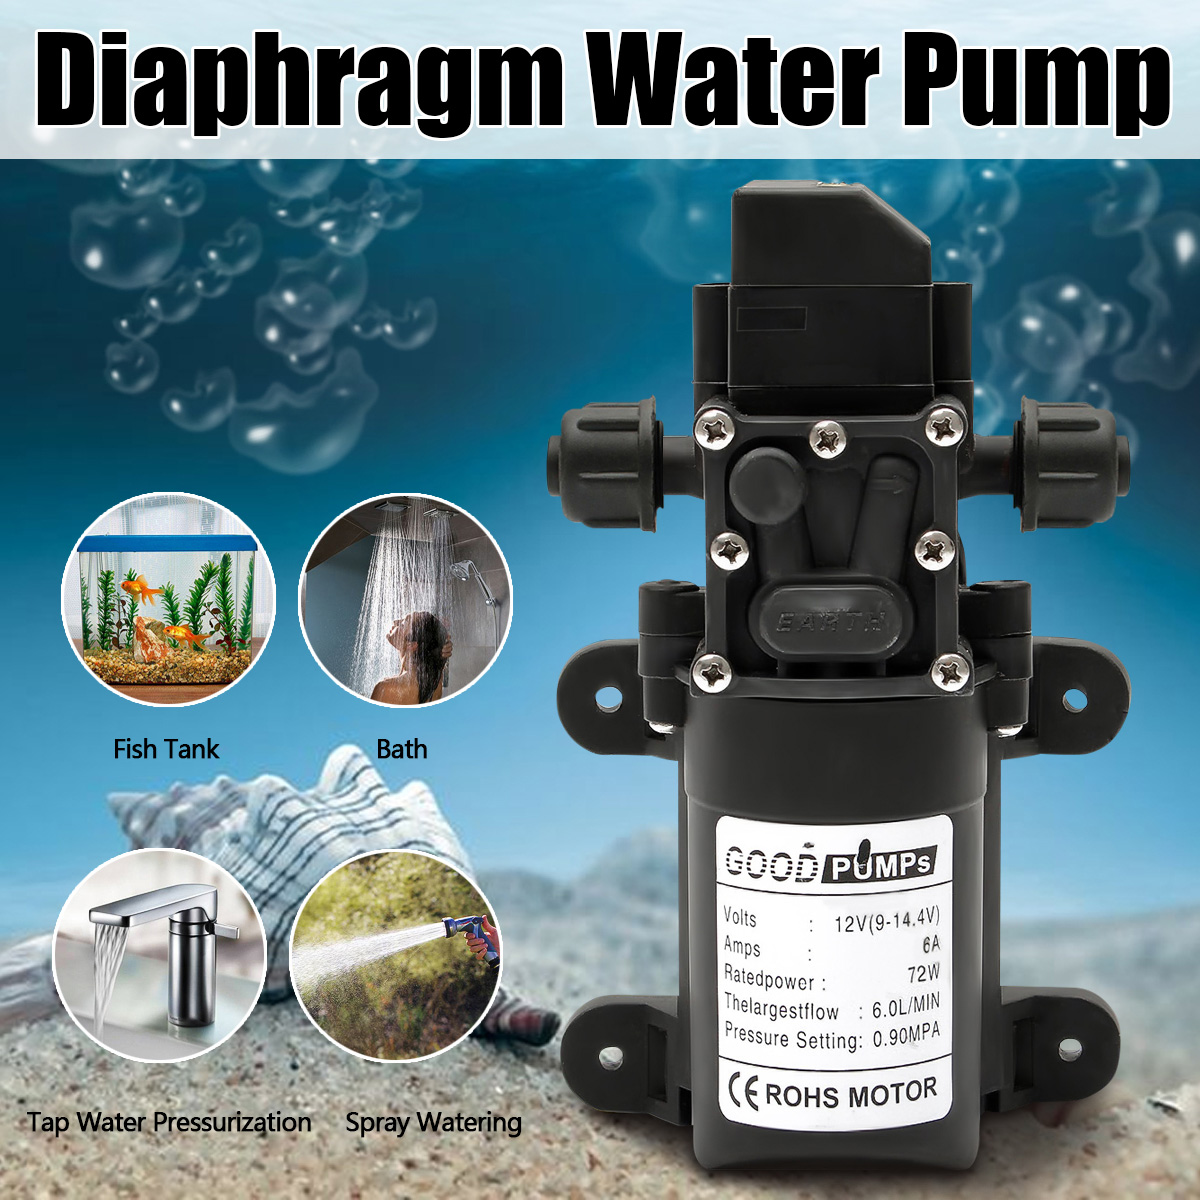 Water Pump 12V 6A 72W 130PSI 6L/Min Stable High Pressure Diaphragm Water Pump PressureProtection Water Sprayer for Caravan BoatWater Pump 12V 6A 72W 130PSI 6L/Min Stable High Pressure Diaphragm Water Pump PressureProtection Water Sprayer for Caravan Boat